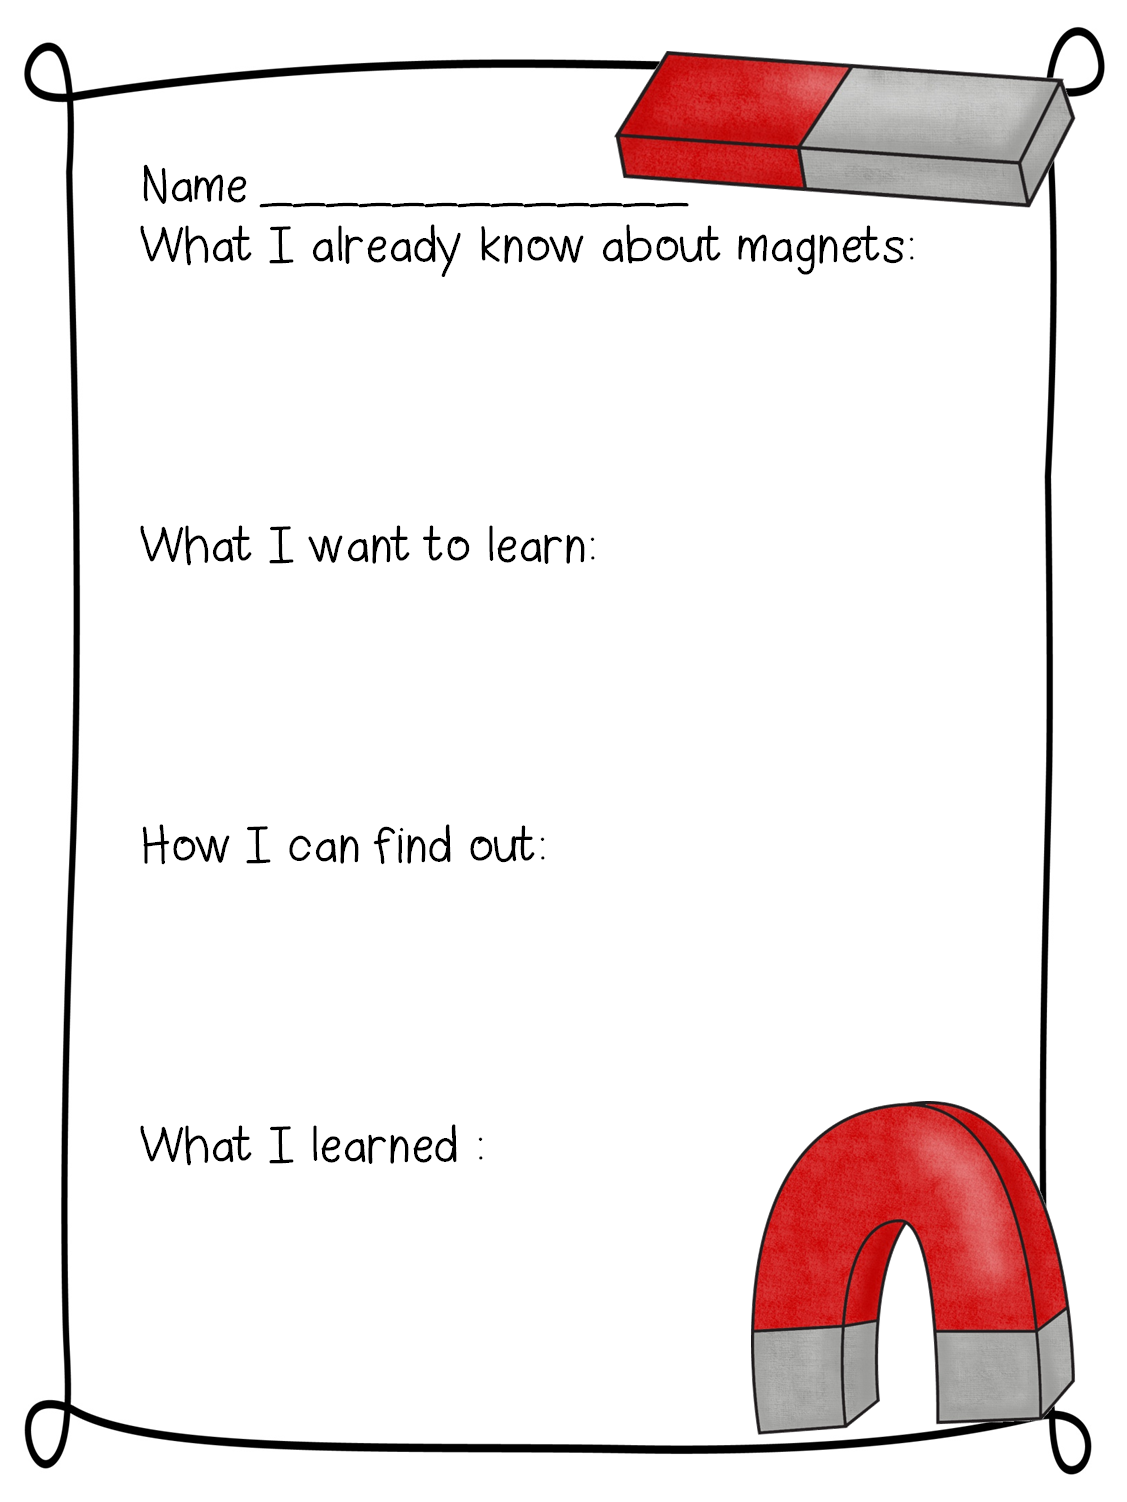 Worksheets Magnets Worksheets new 9 first grade science worksheets on magnets firstgrade worksheet marvelous wow grade